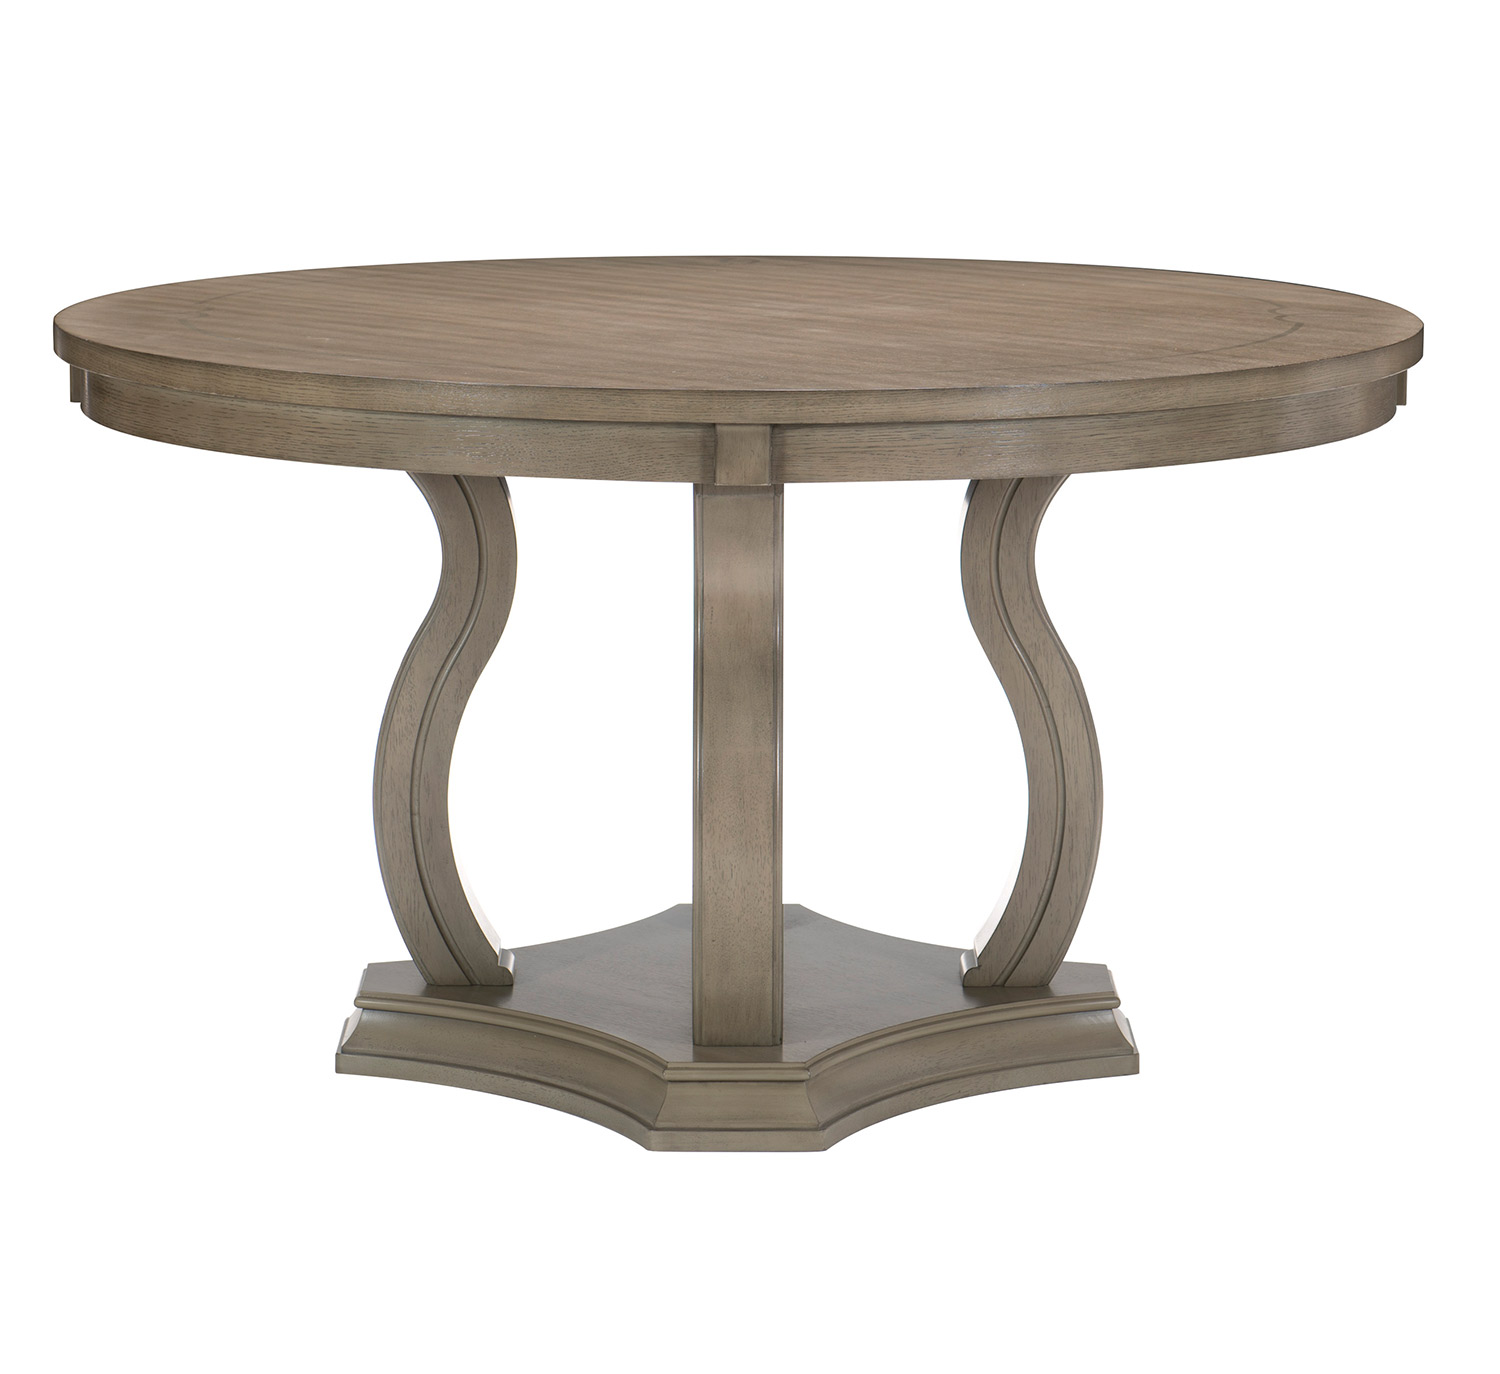 Homelegance Vermillion Round Dining Table - Bisque